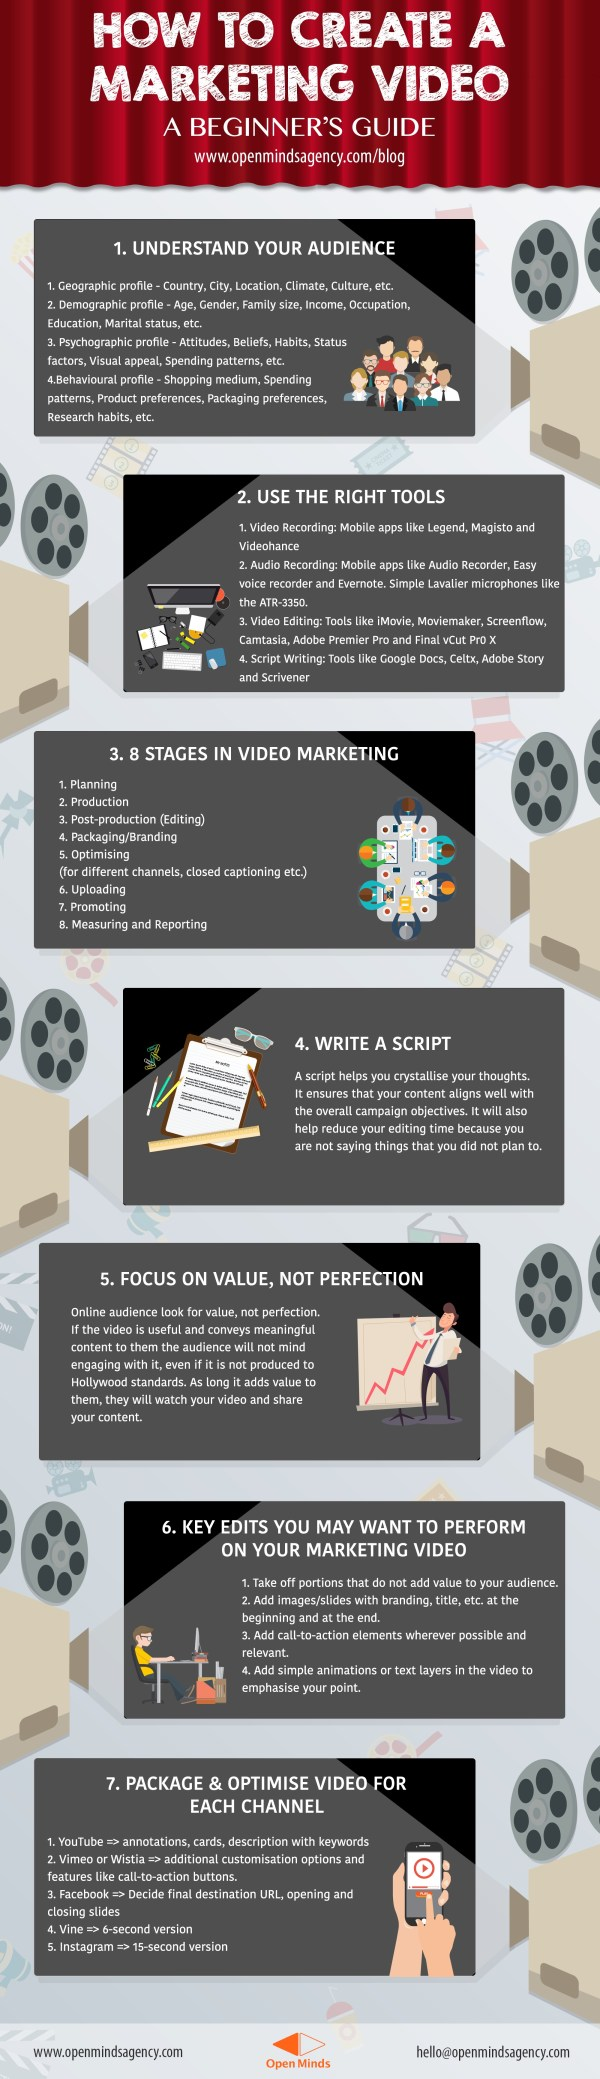 Infographic on How to create a marketing video